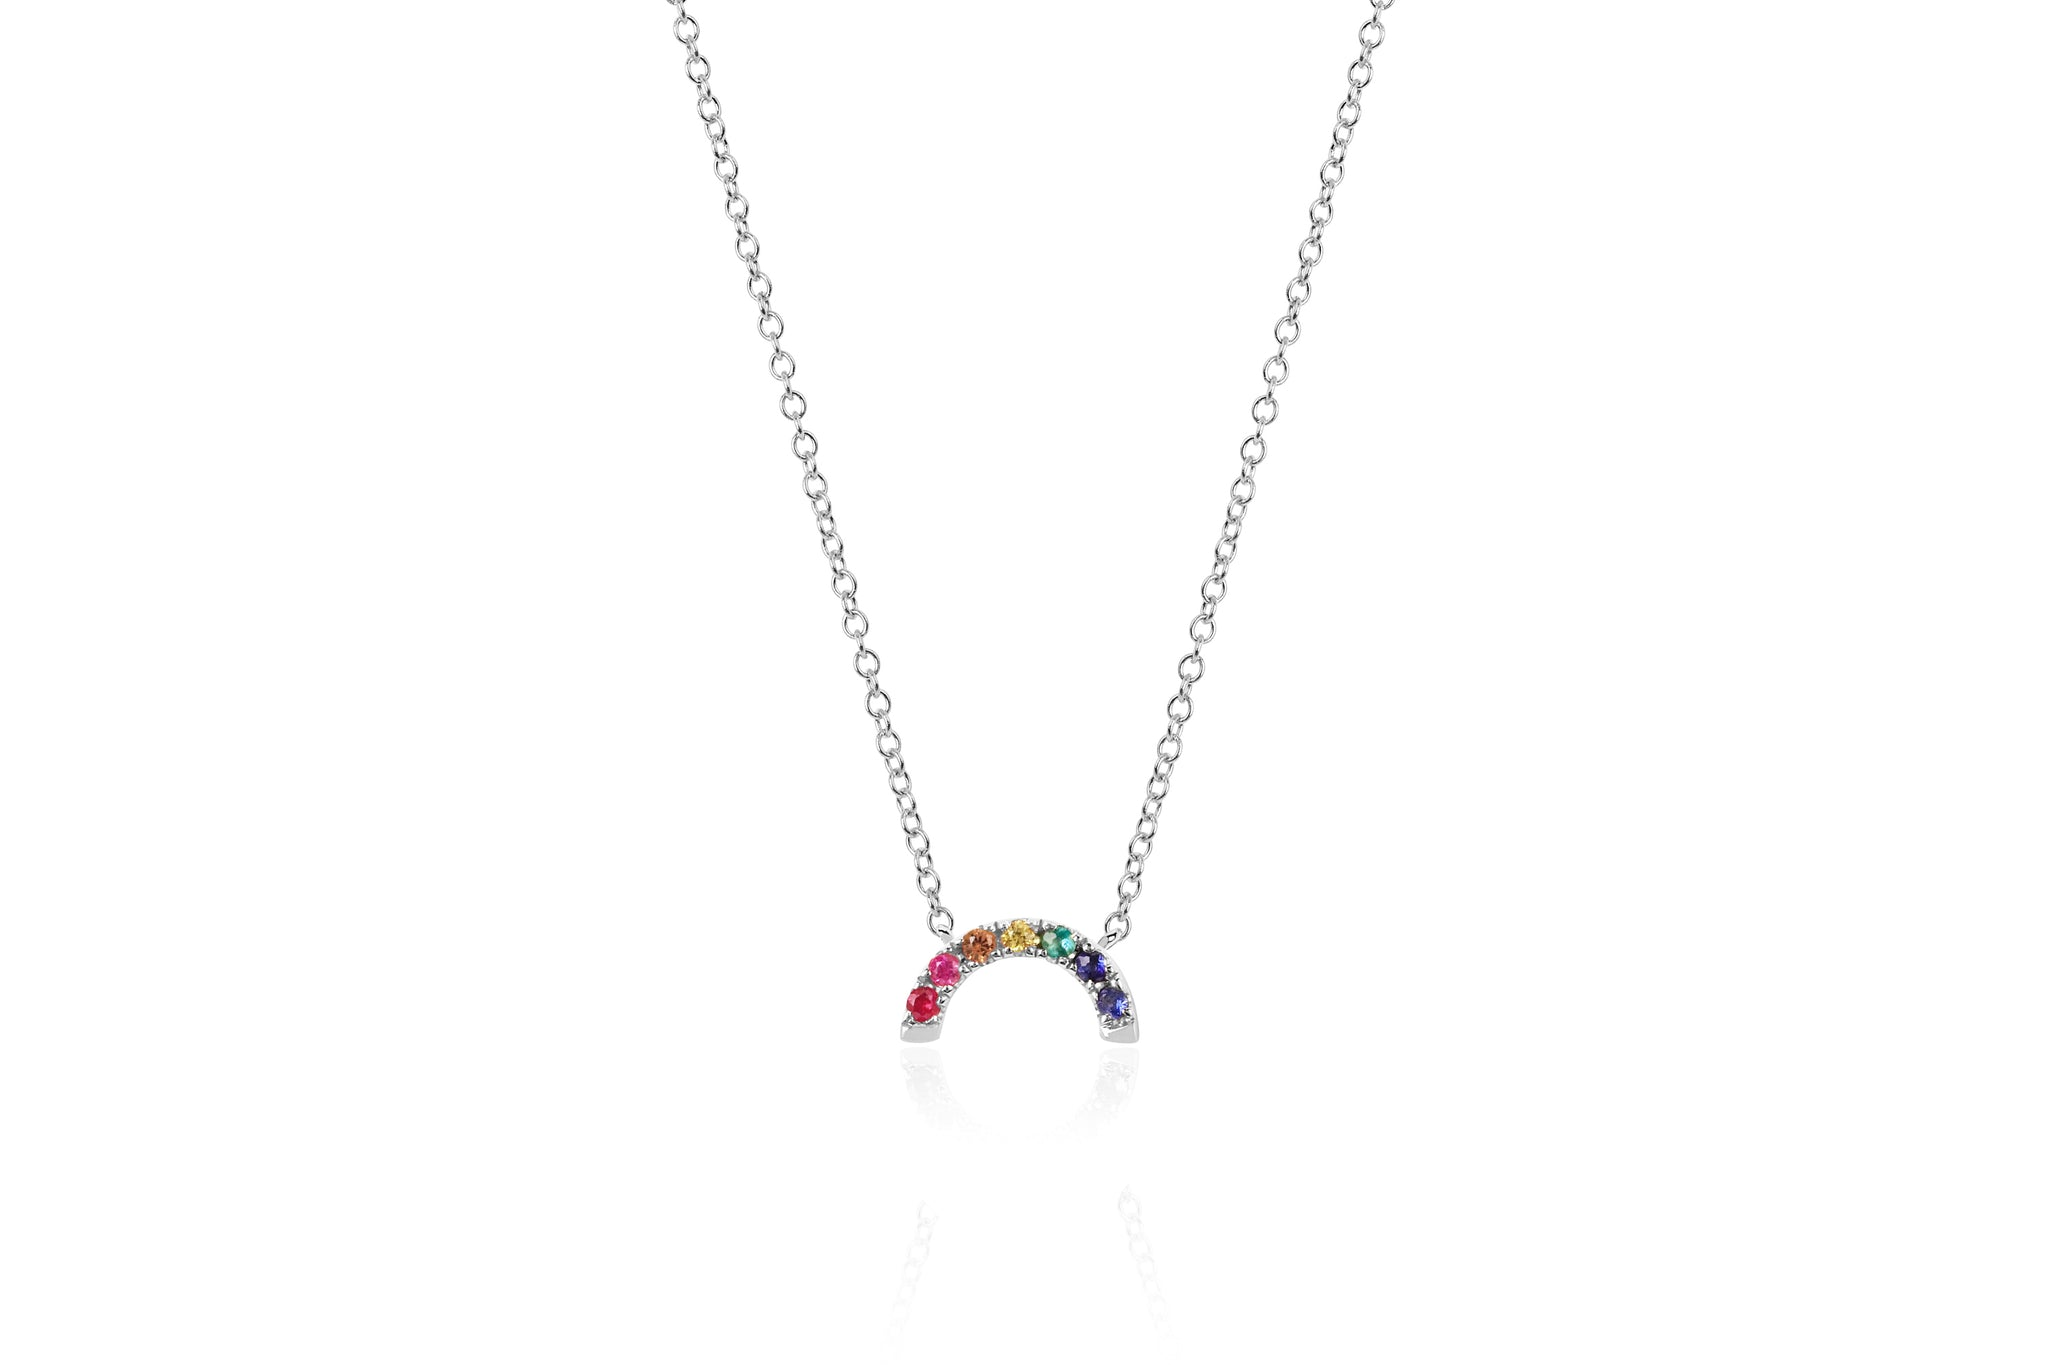 image necklace rainbow zulujay products